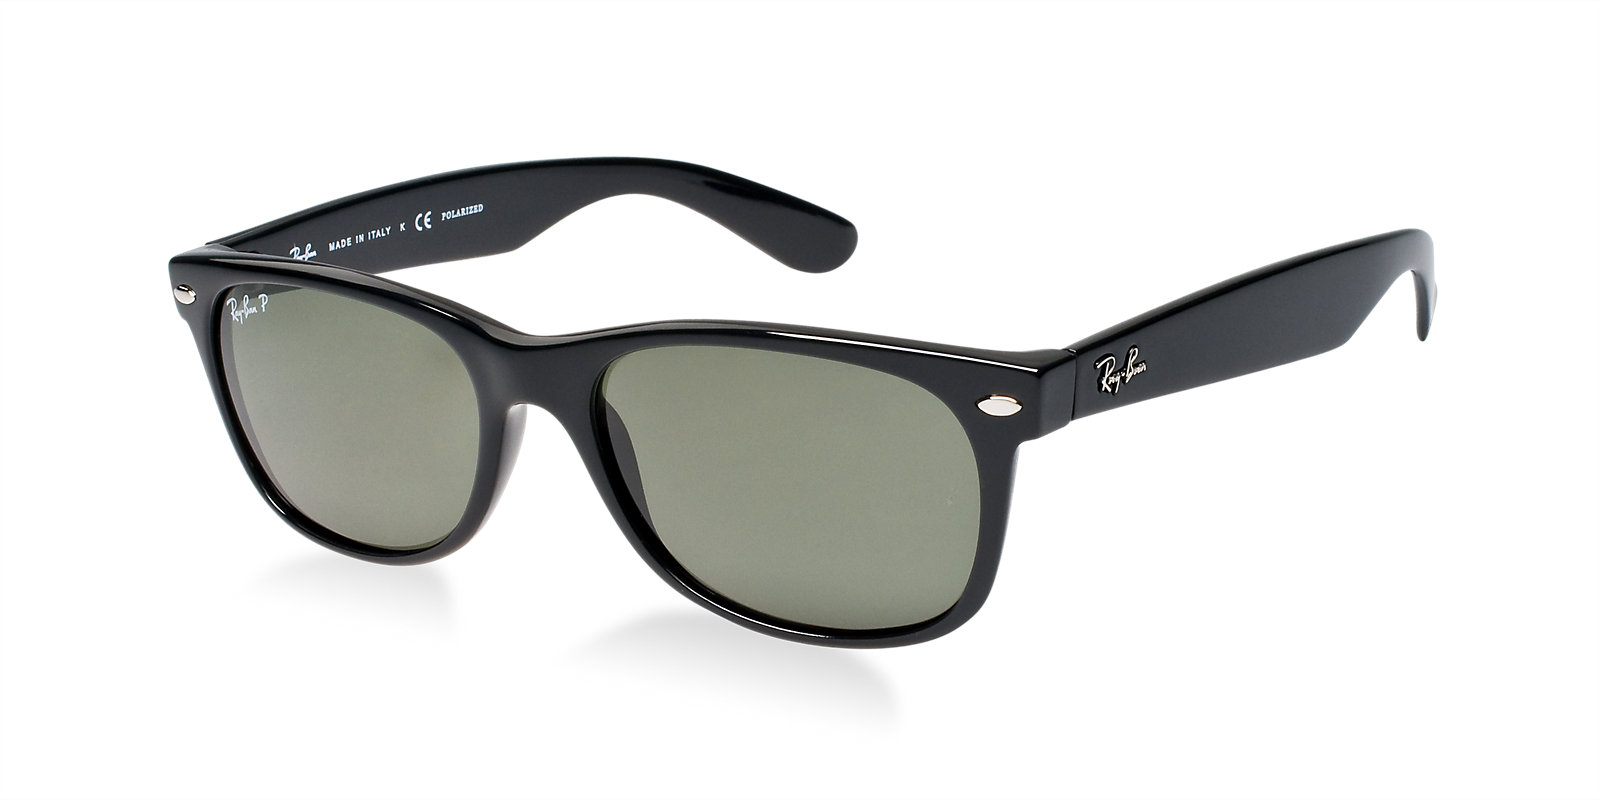 3ccafd1878 Previous  Next. Previous  Next. RAY-BAN RB2132 901 58 BLACK POLARIZED NEW  WAYFARER SUNGLASSES